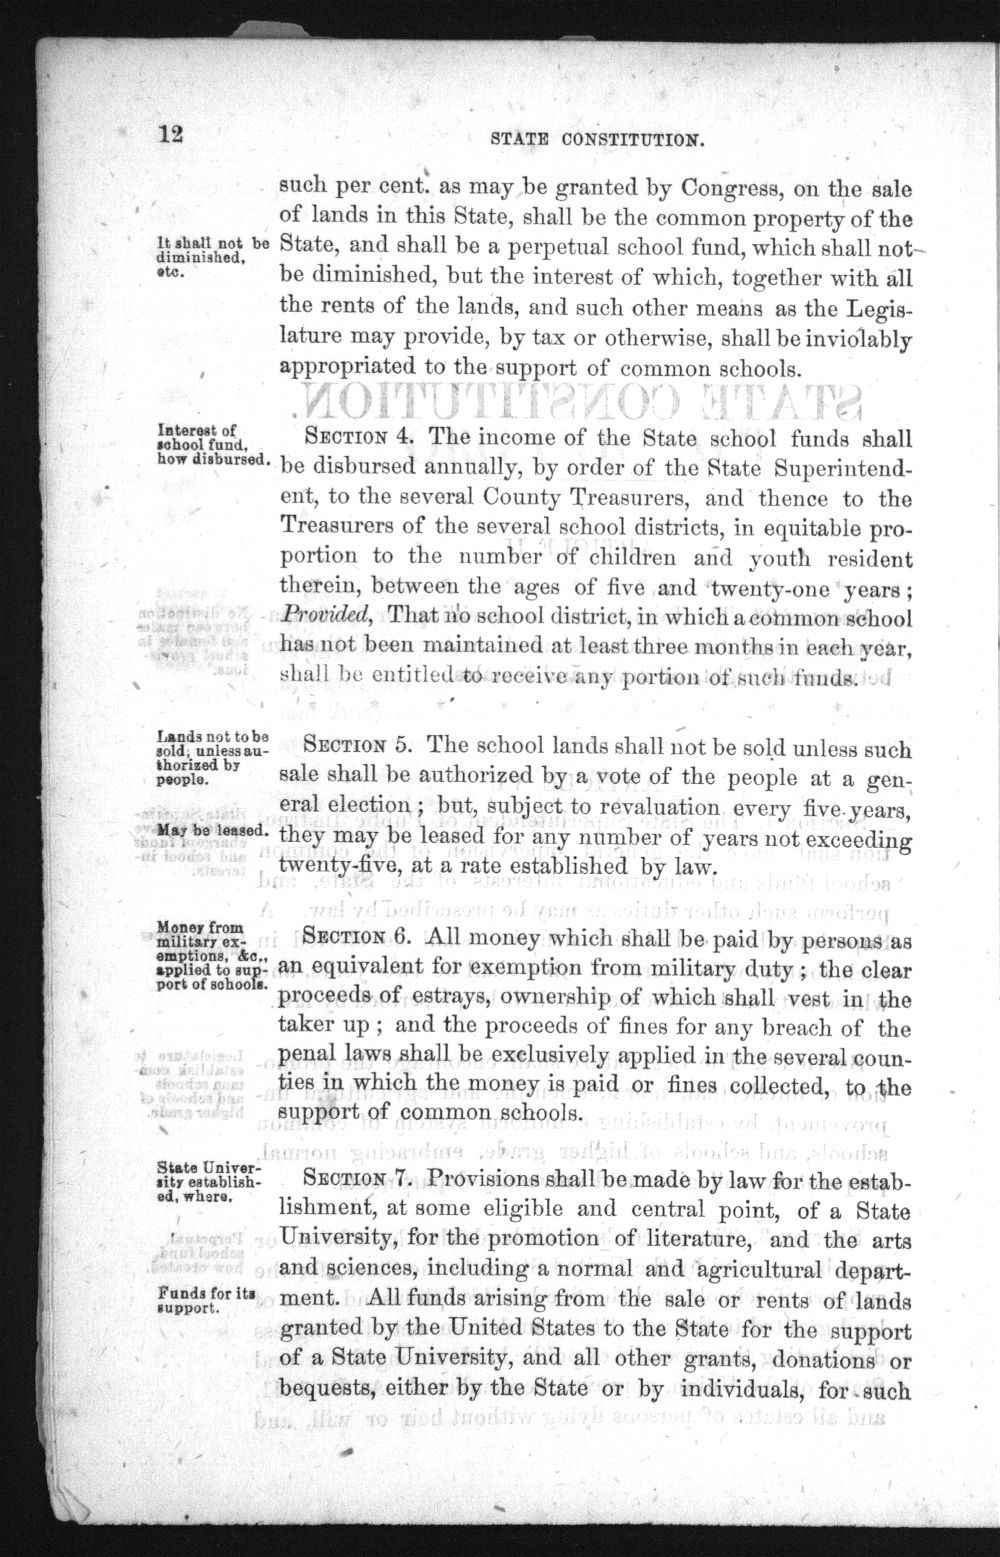 Laws and forms relating to common schools in the state of Kansas - 12